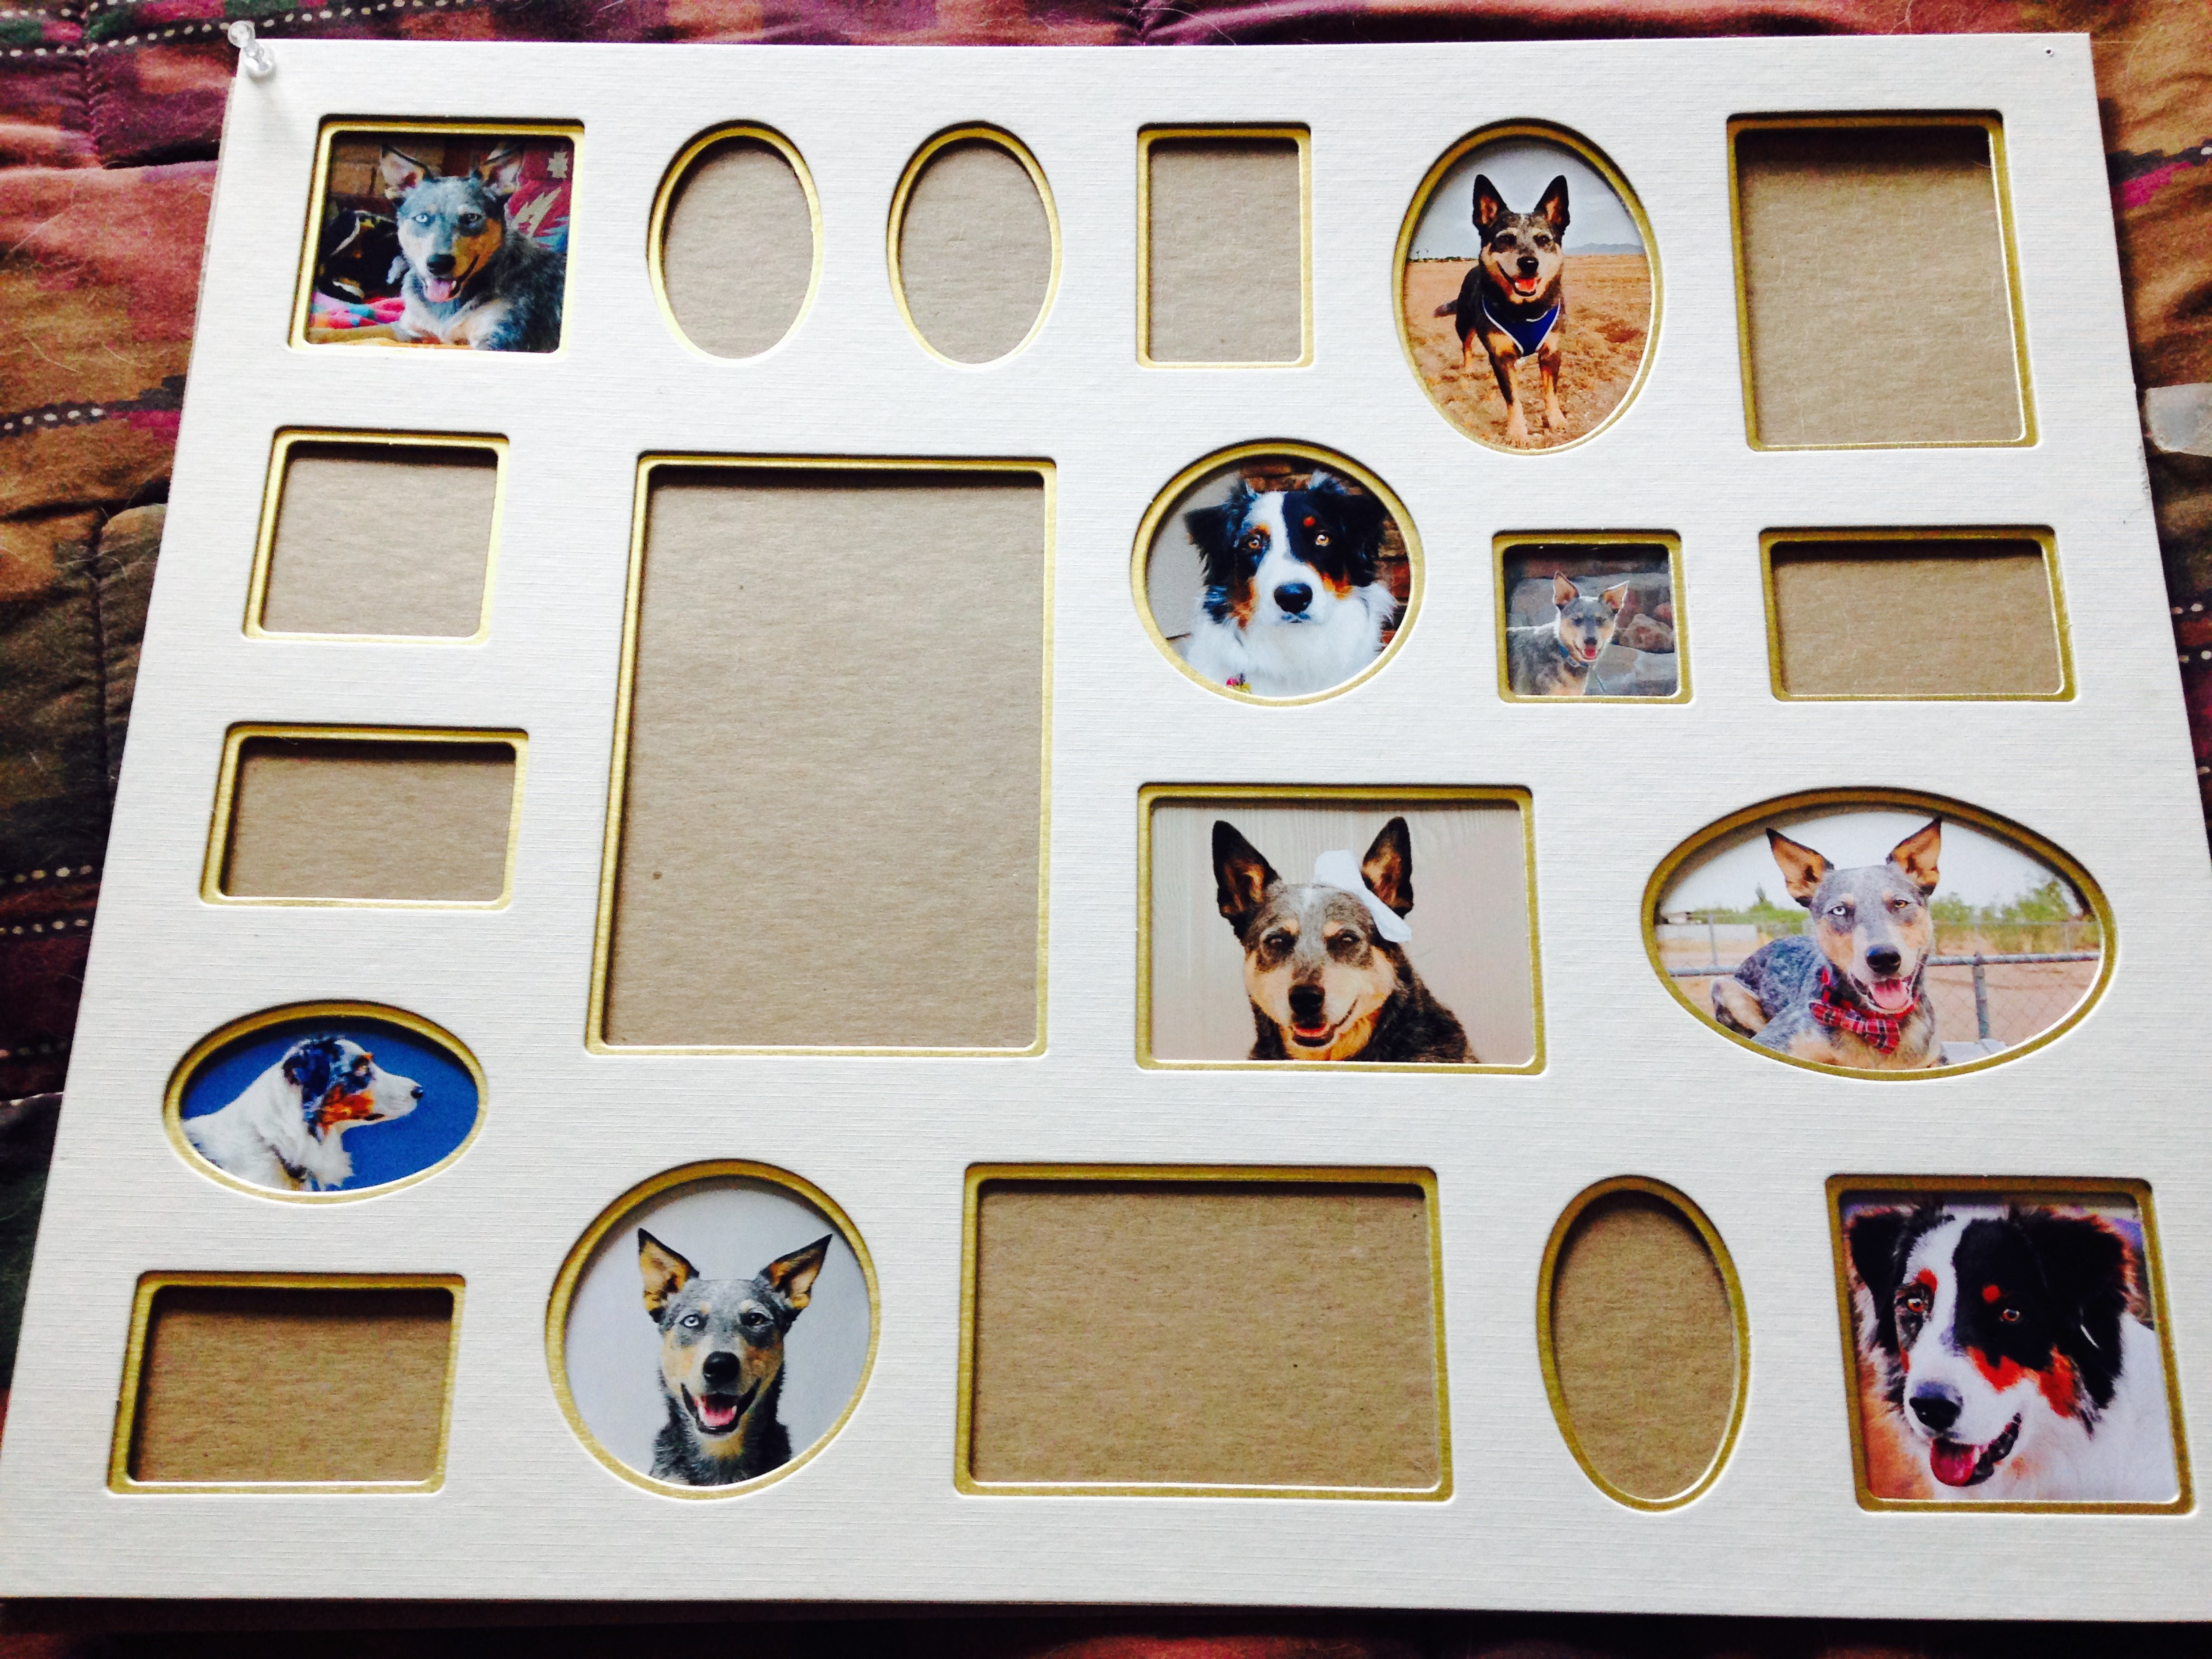 Diy dog photo frame decoration tiffanys diamond dogs 4 repeat steps 2 and 3 until all the frames are filled solutioingenieria Gallery